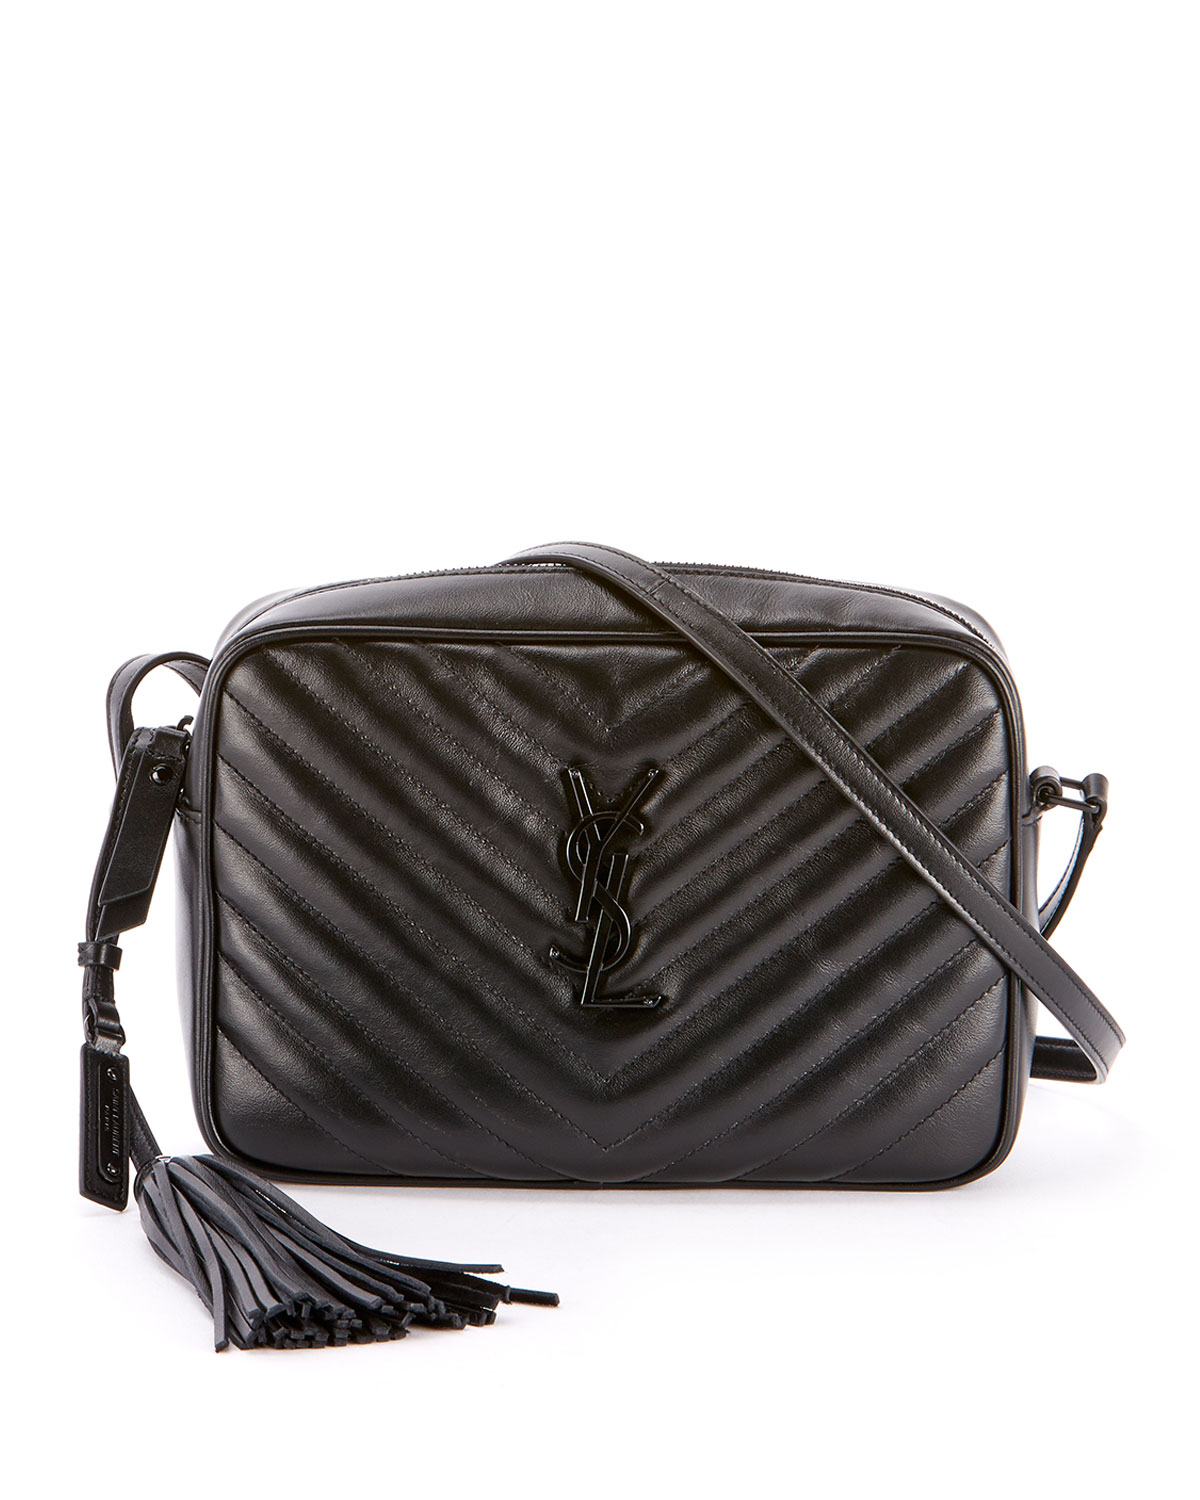 902597ddba37 Saint LaurentLoulou Monogram YSL Medium Chevron Quilted Leather Camera  Shoulder Bag - Black Hardware